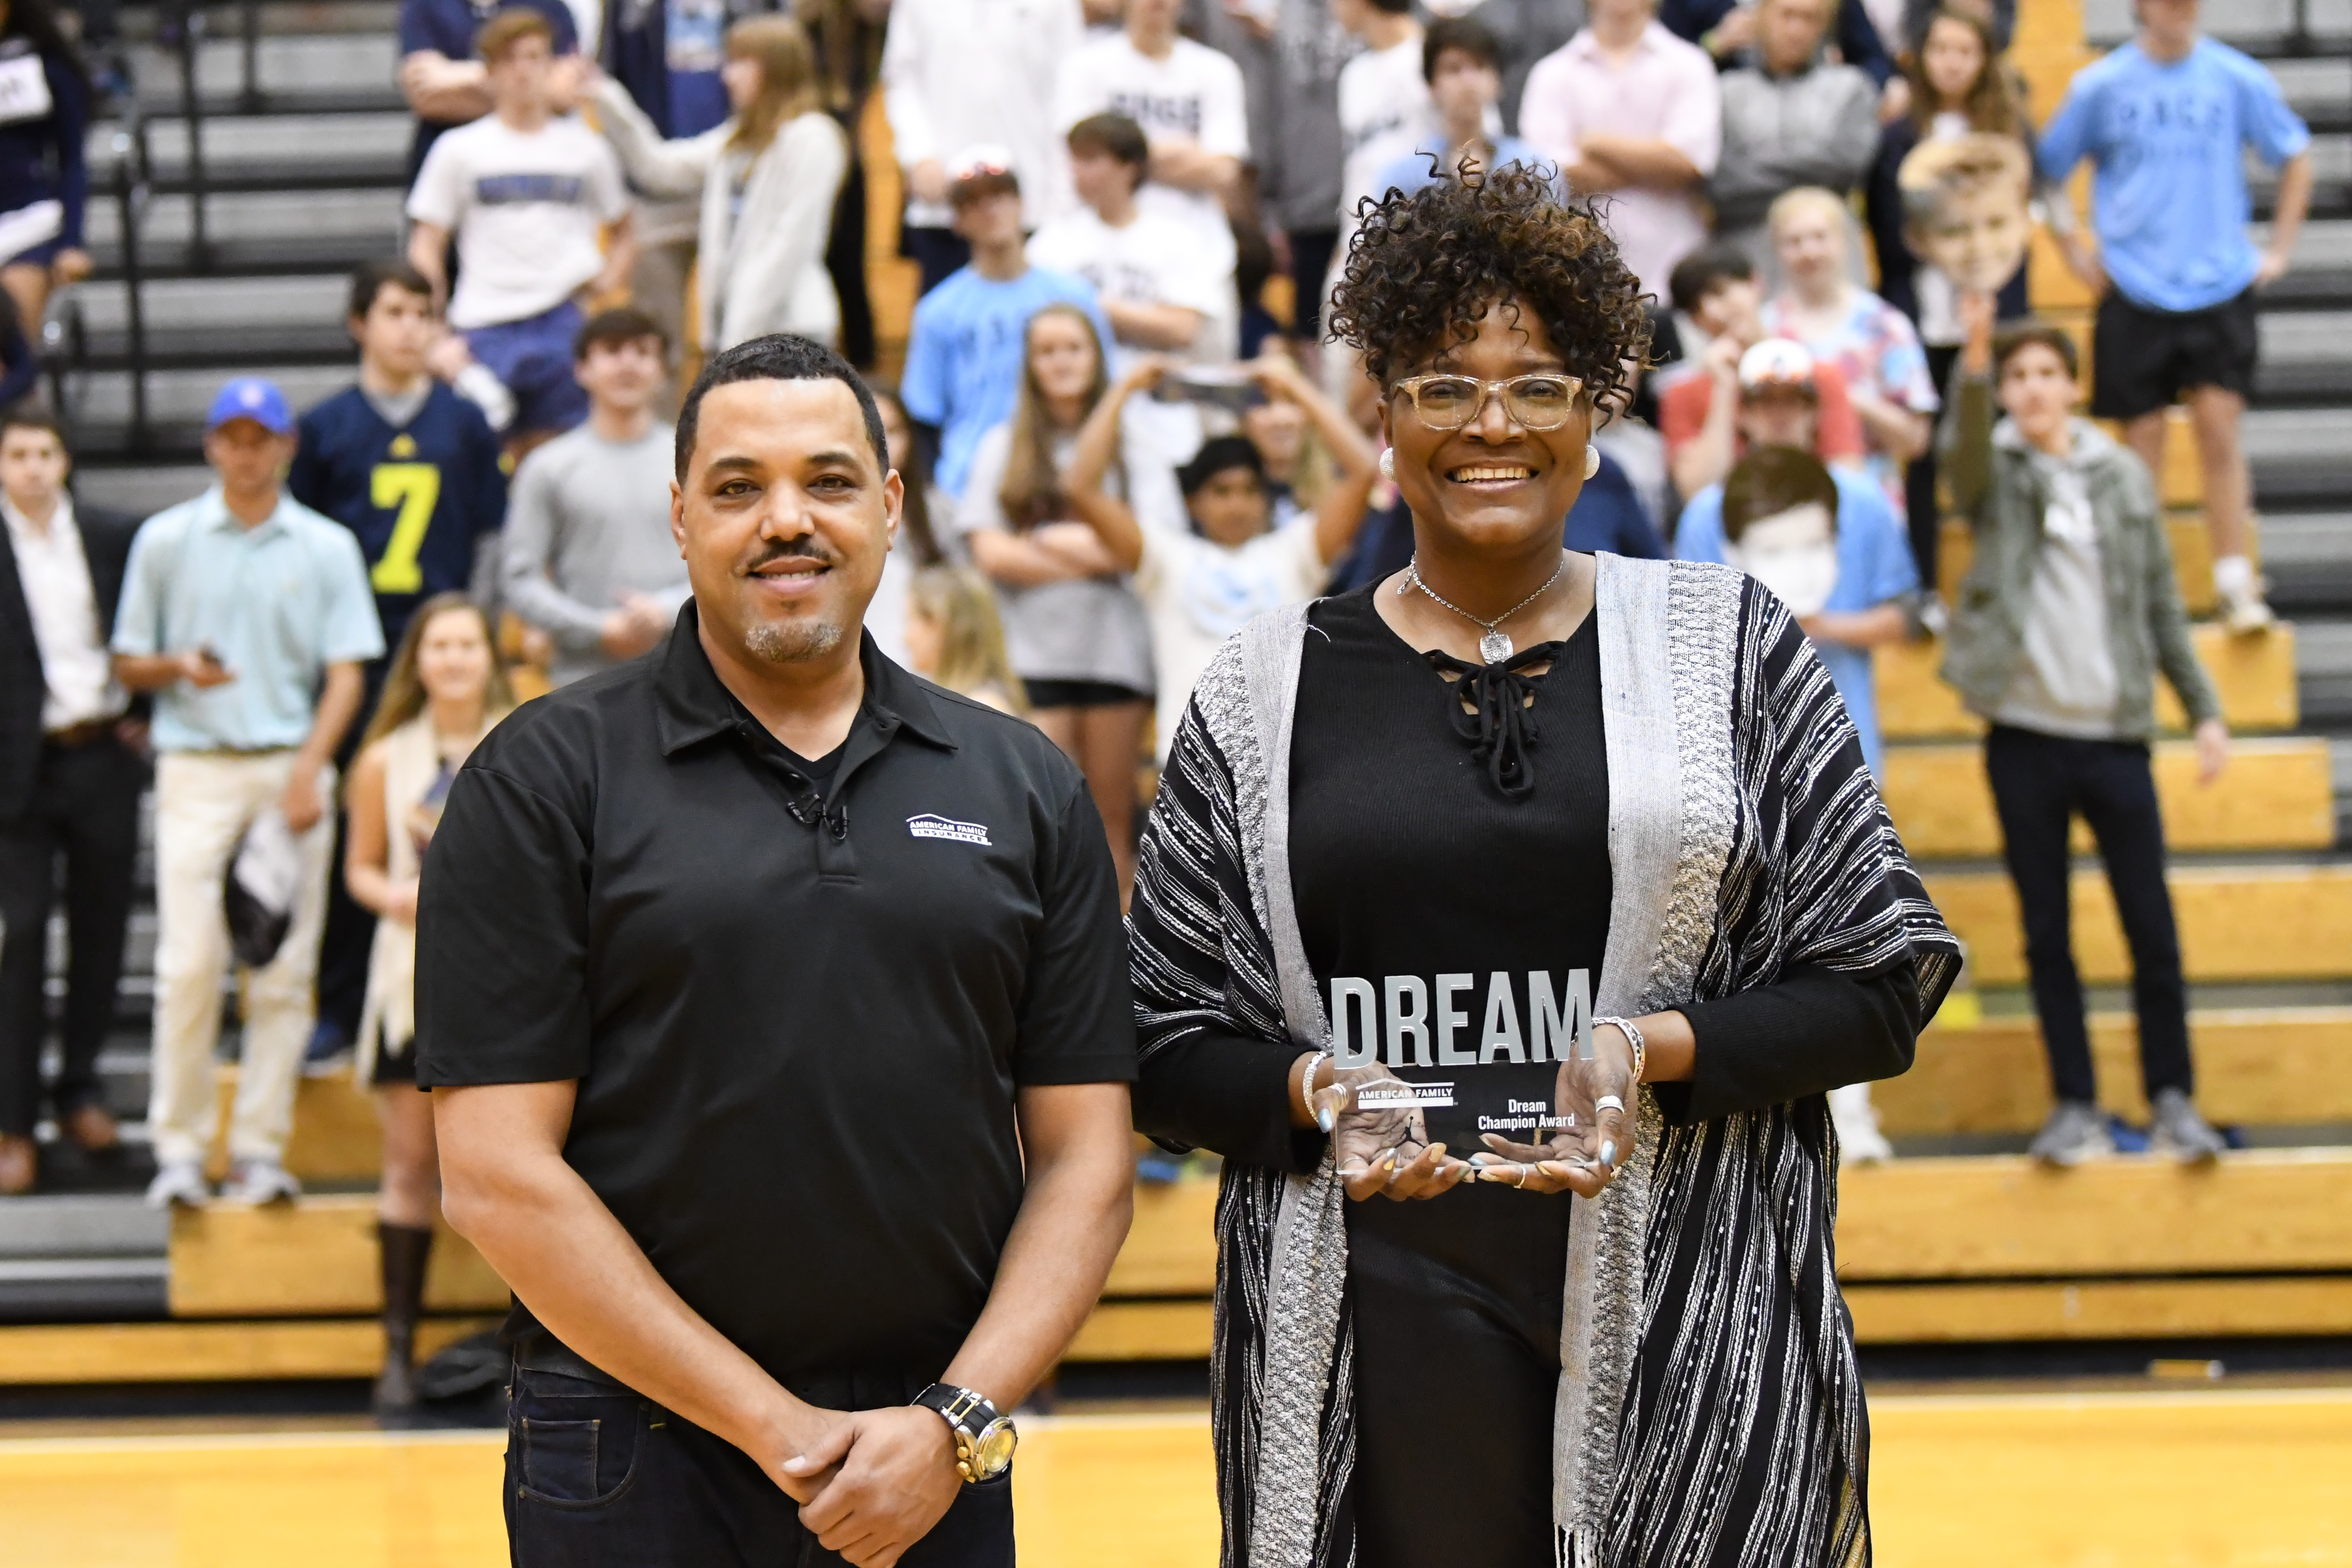 Wendell Carter Jr. presented his mom, Kylia, with the Dream Champion Award. (Photo: Position Sports)